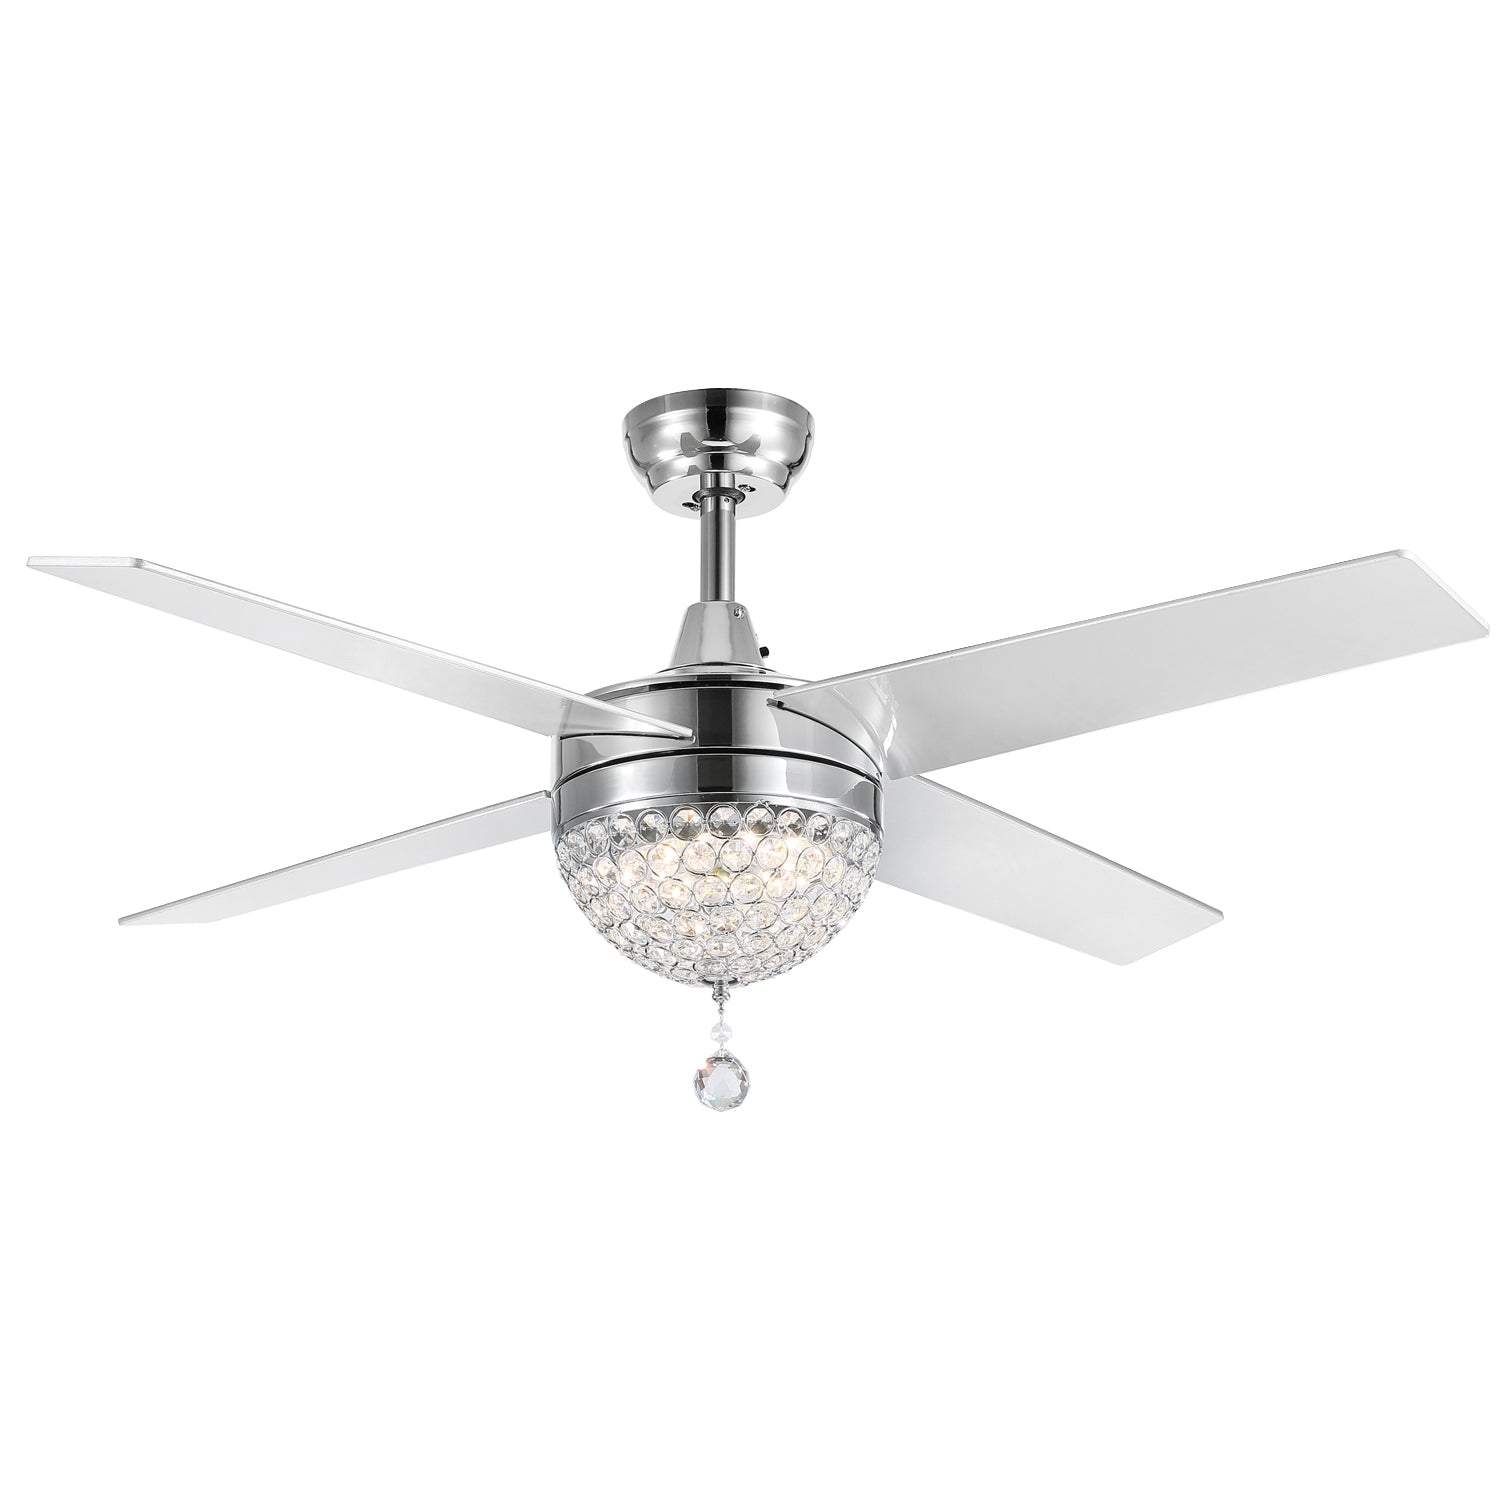 Polished Blades Ceiling Fan with Light